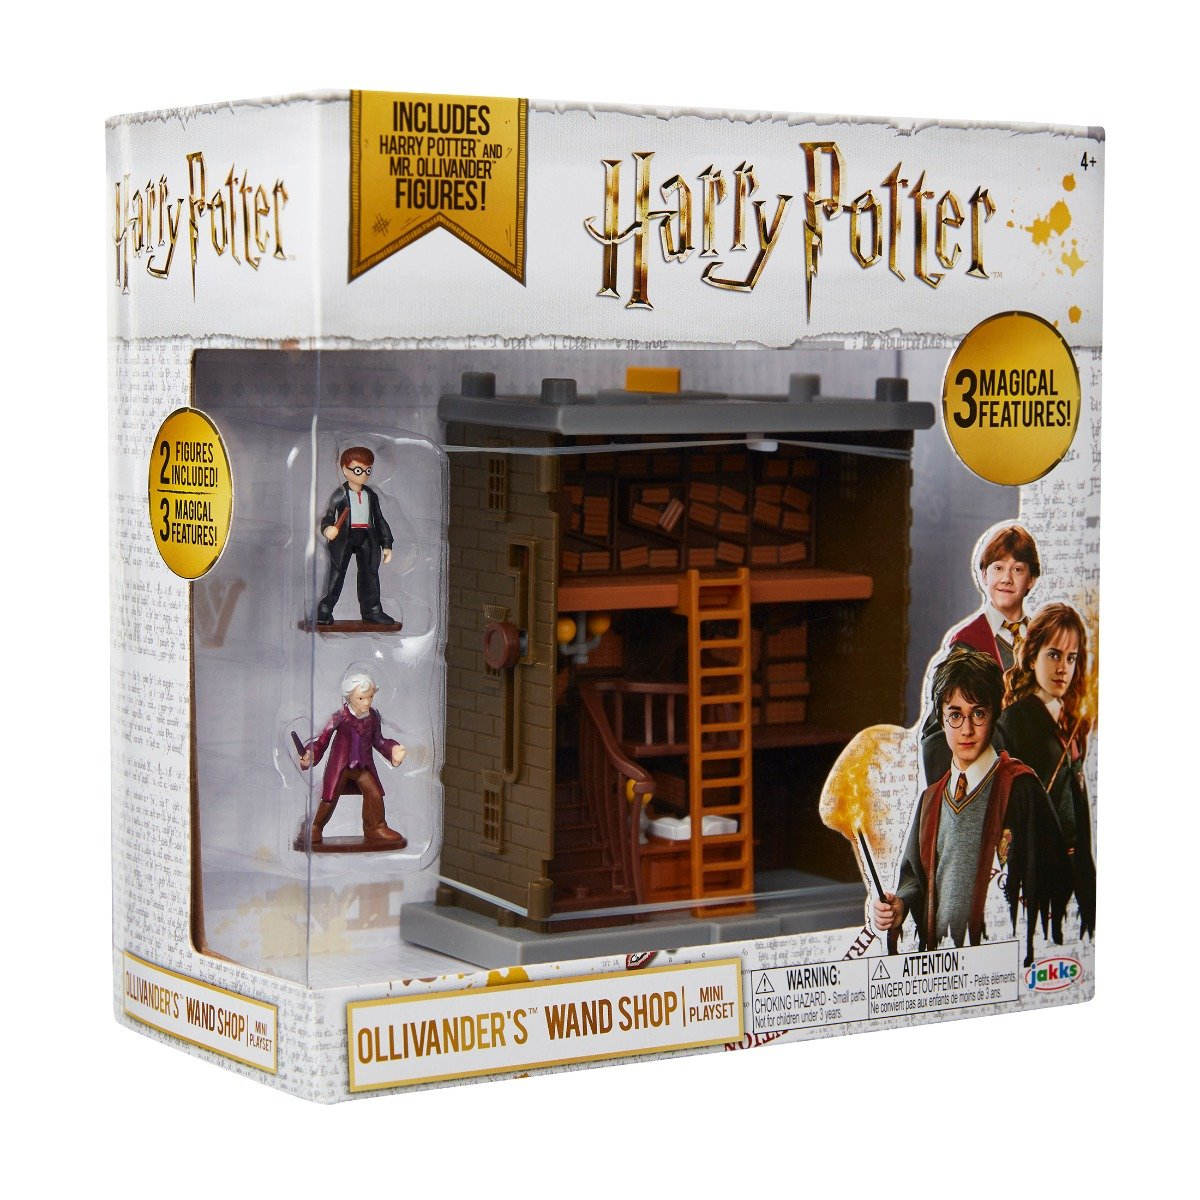 Set De Joaca Cu Figurine Harry Potter, Olivander Shop